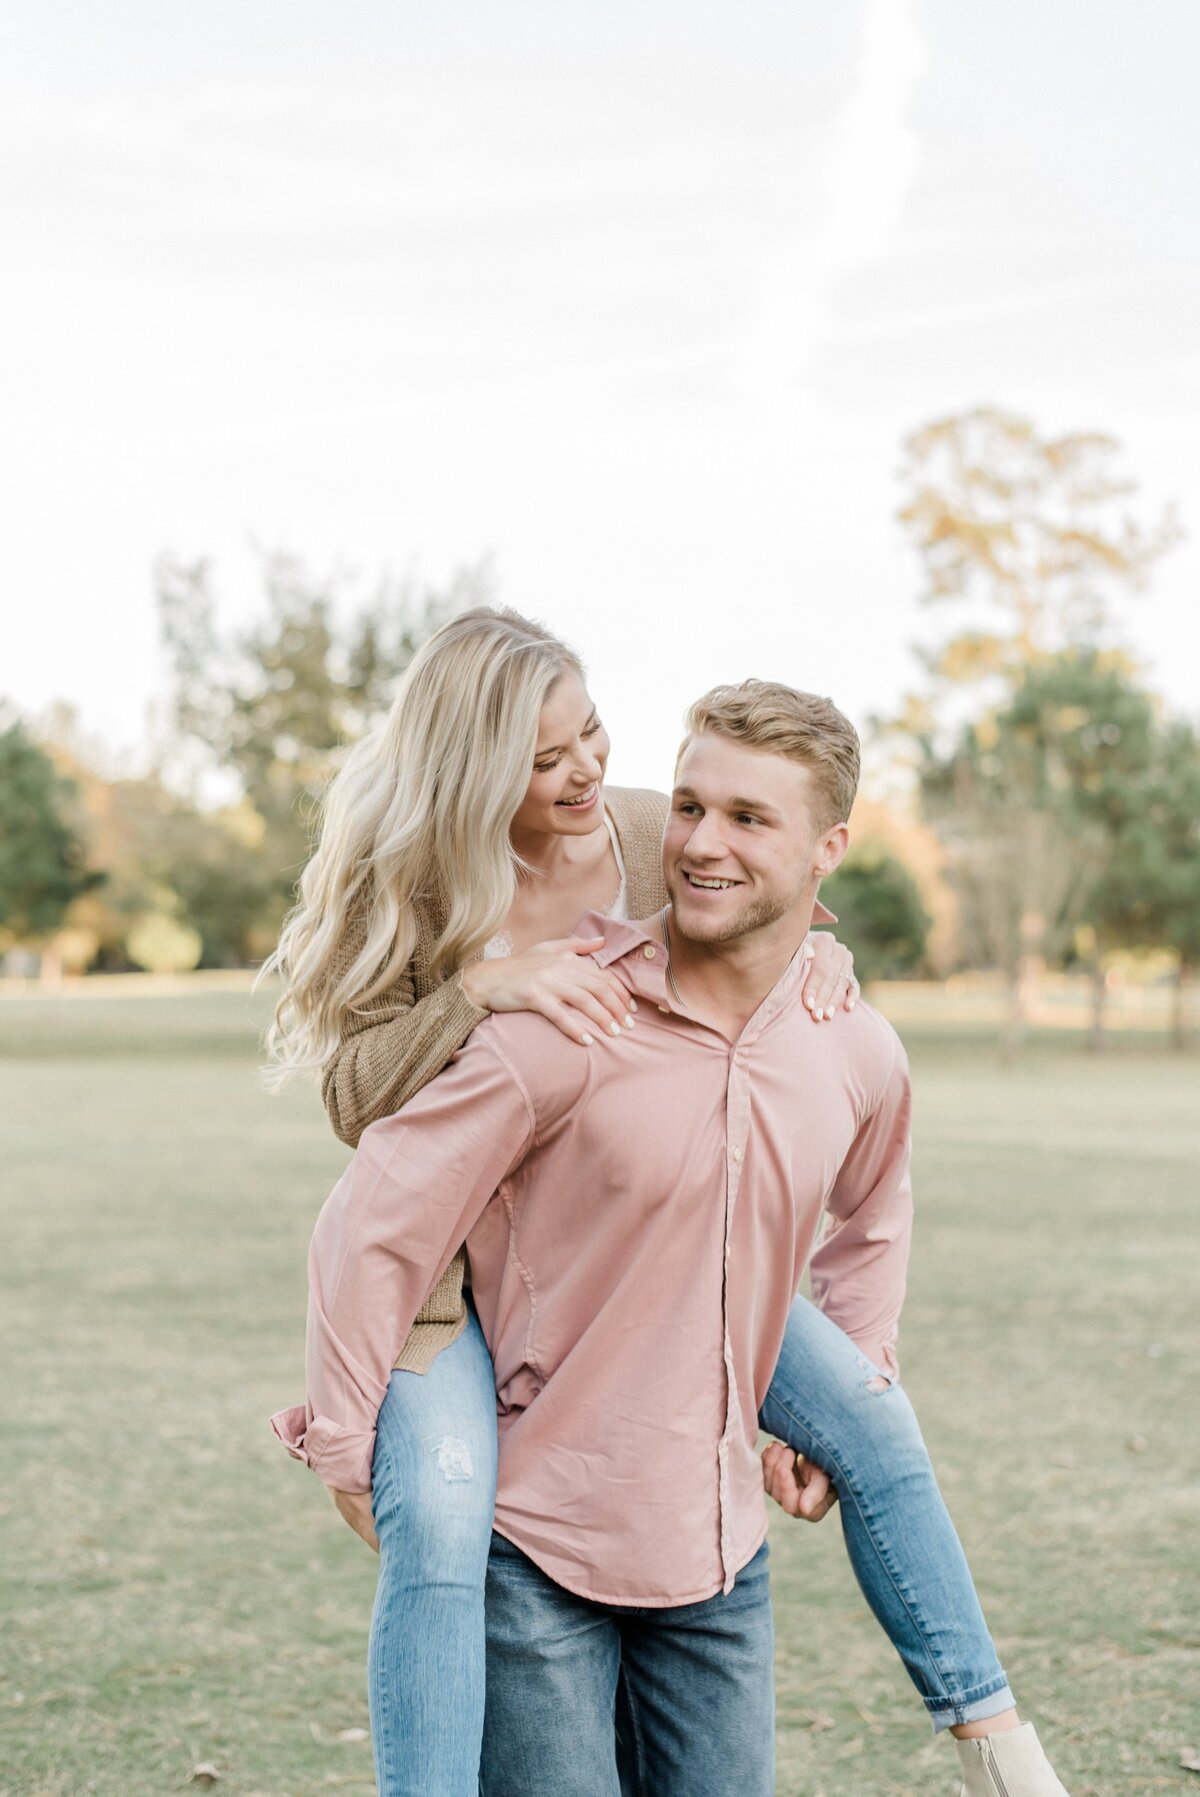 Engagement photographer Texas | Patti Darby Photography 1